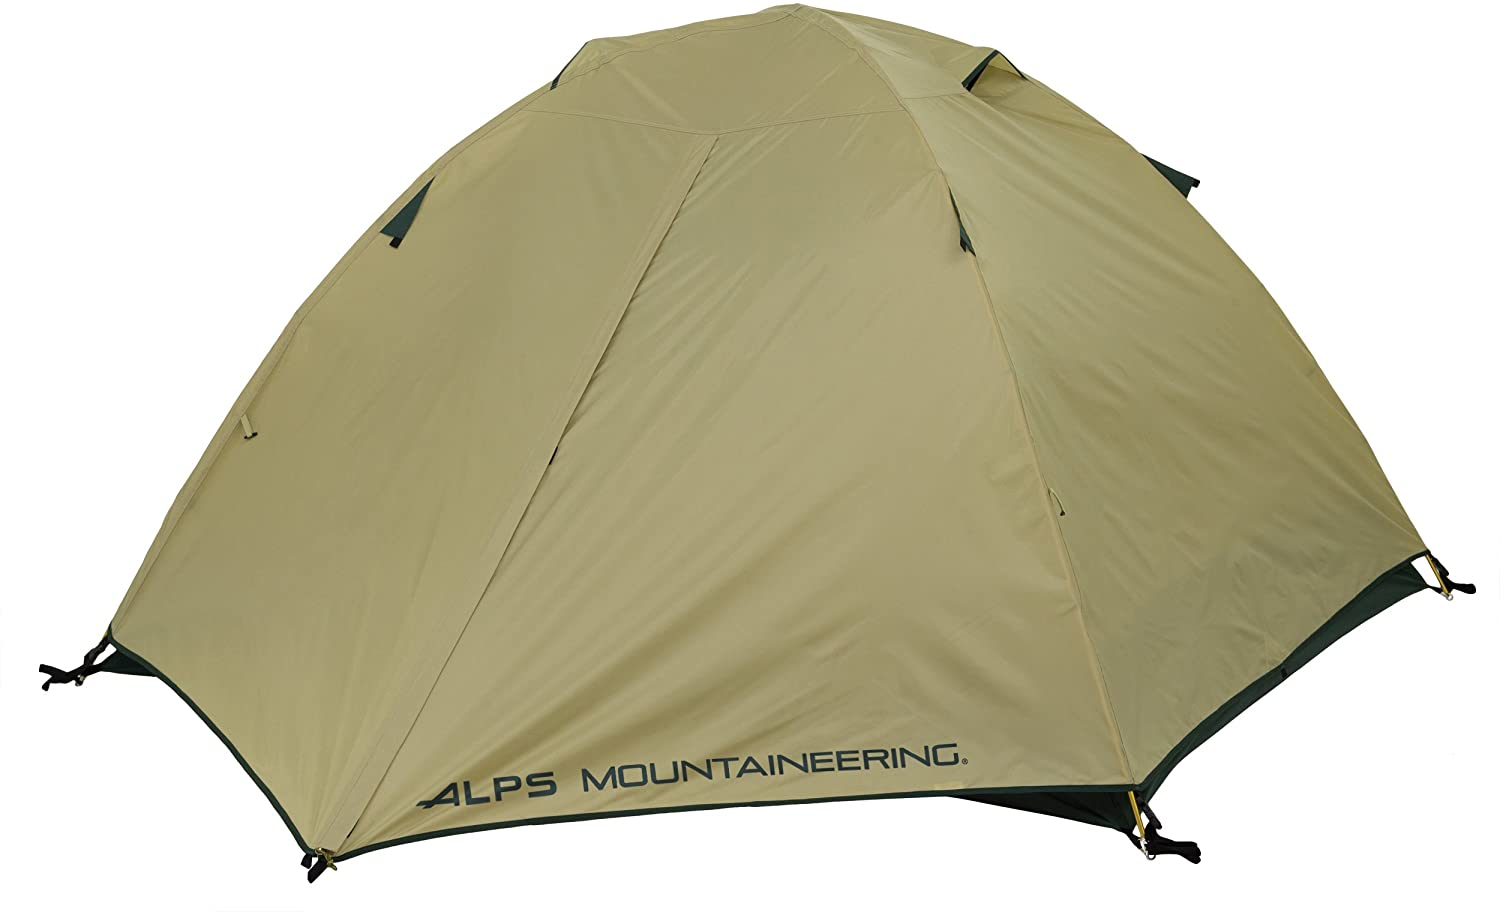 ALPS Mountaineering Expedition-Tents Taurus Outfitter Tent